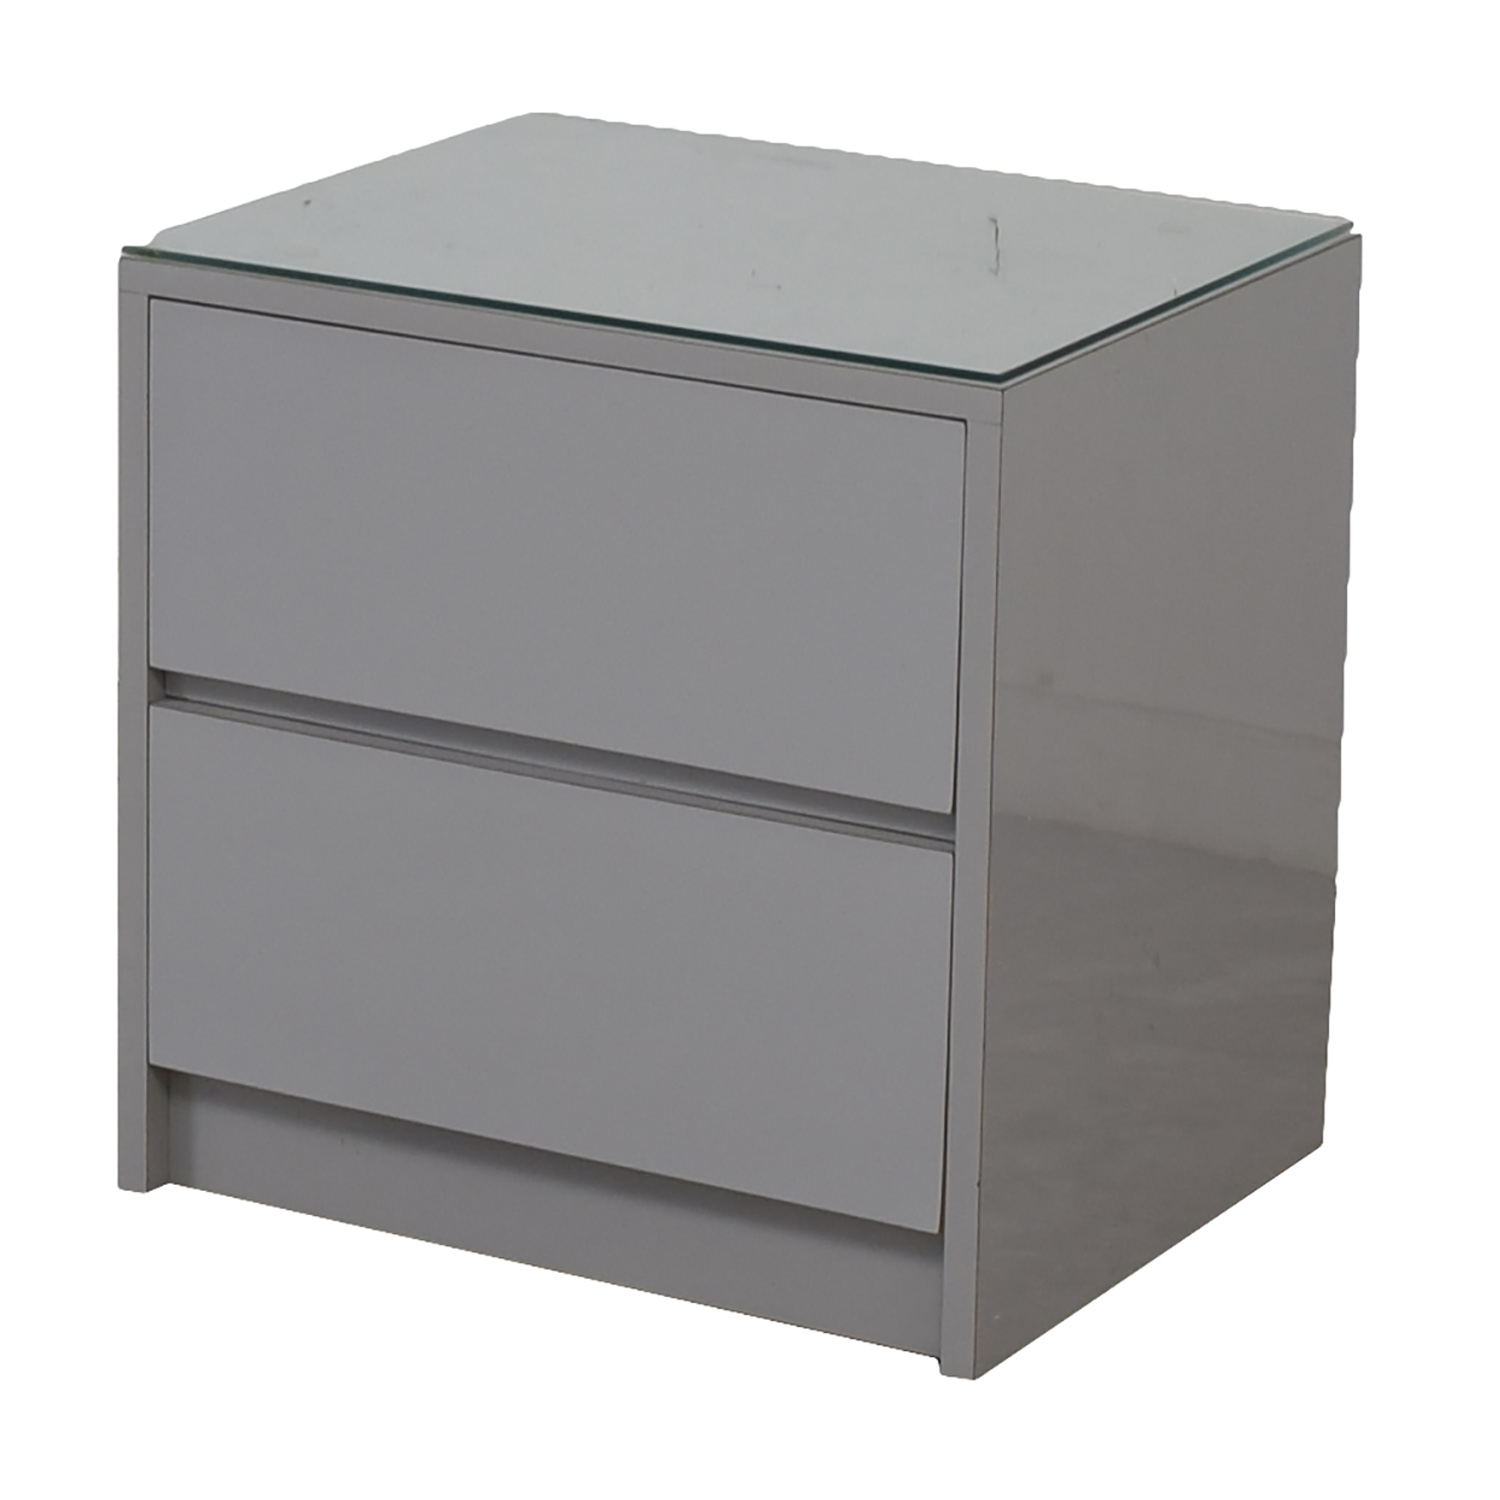 Gray formica two drawer glass top nightstand for sale